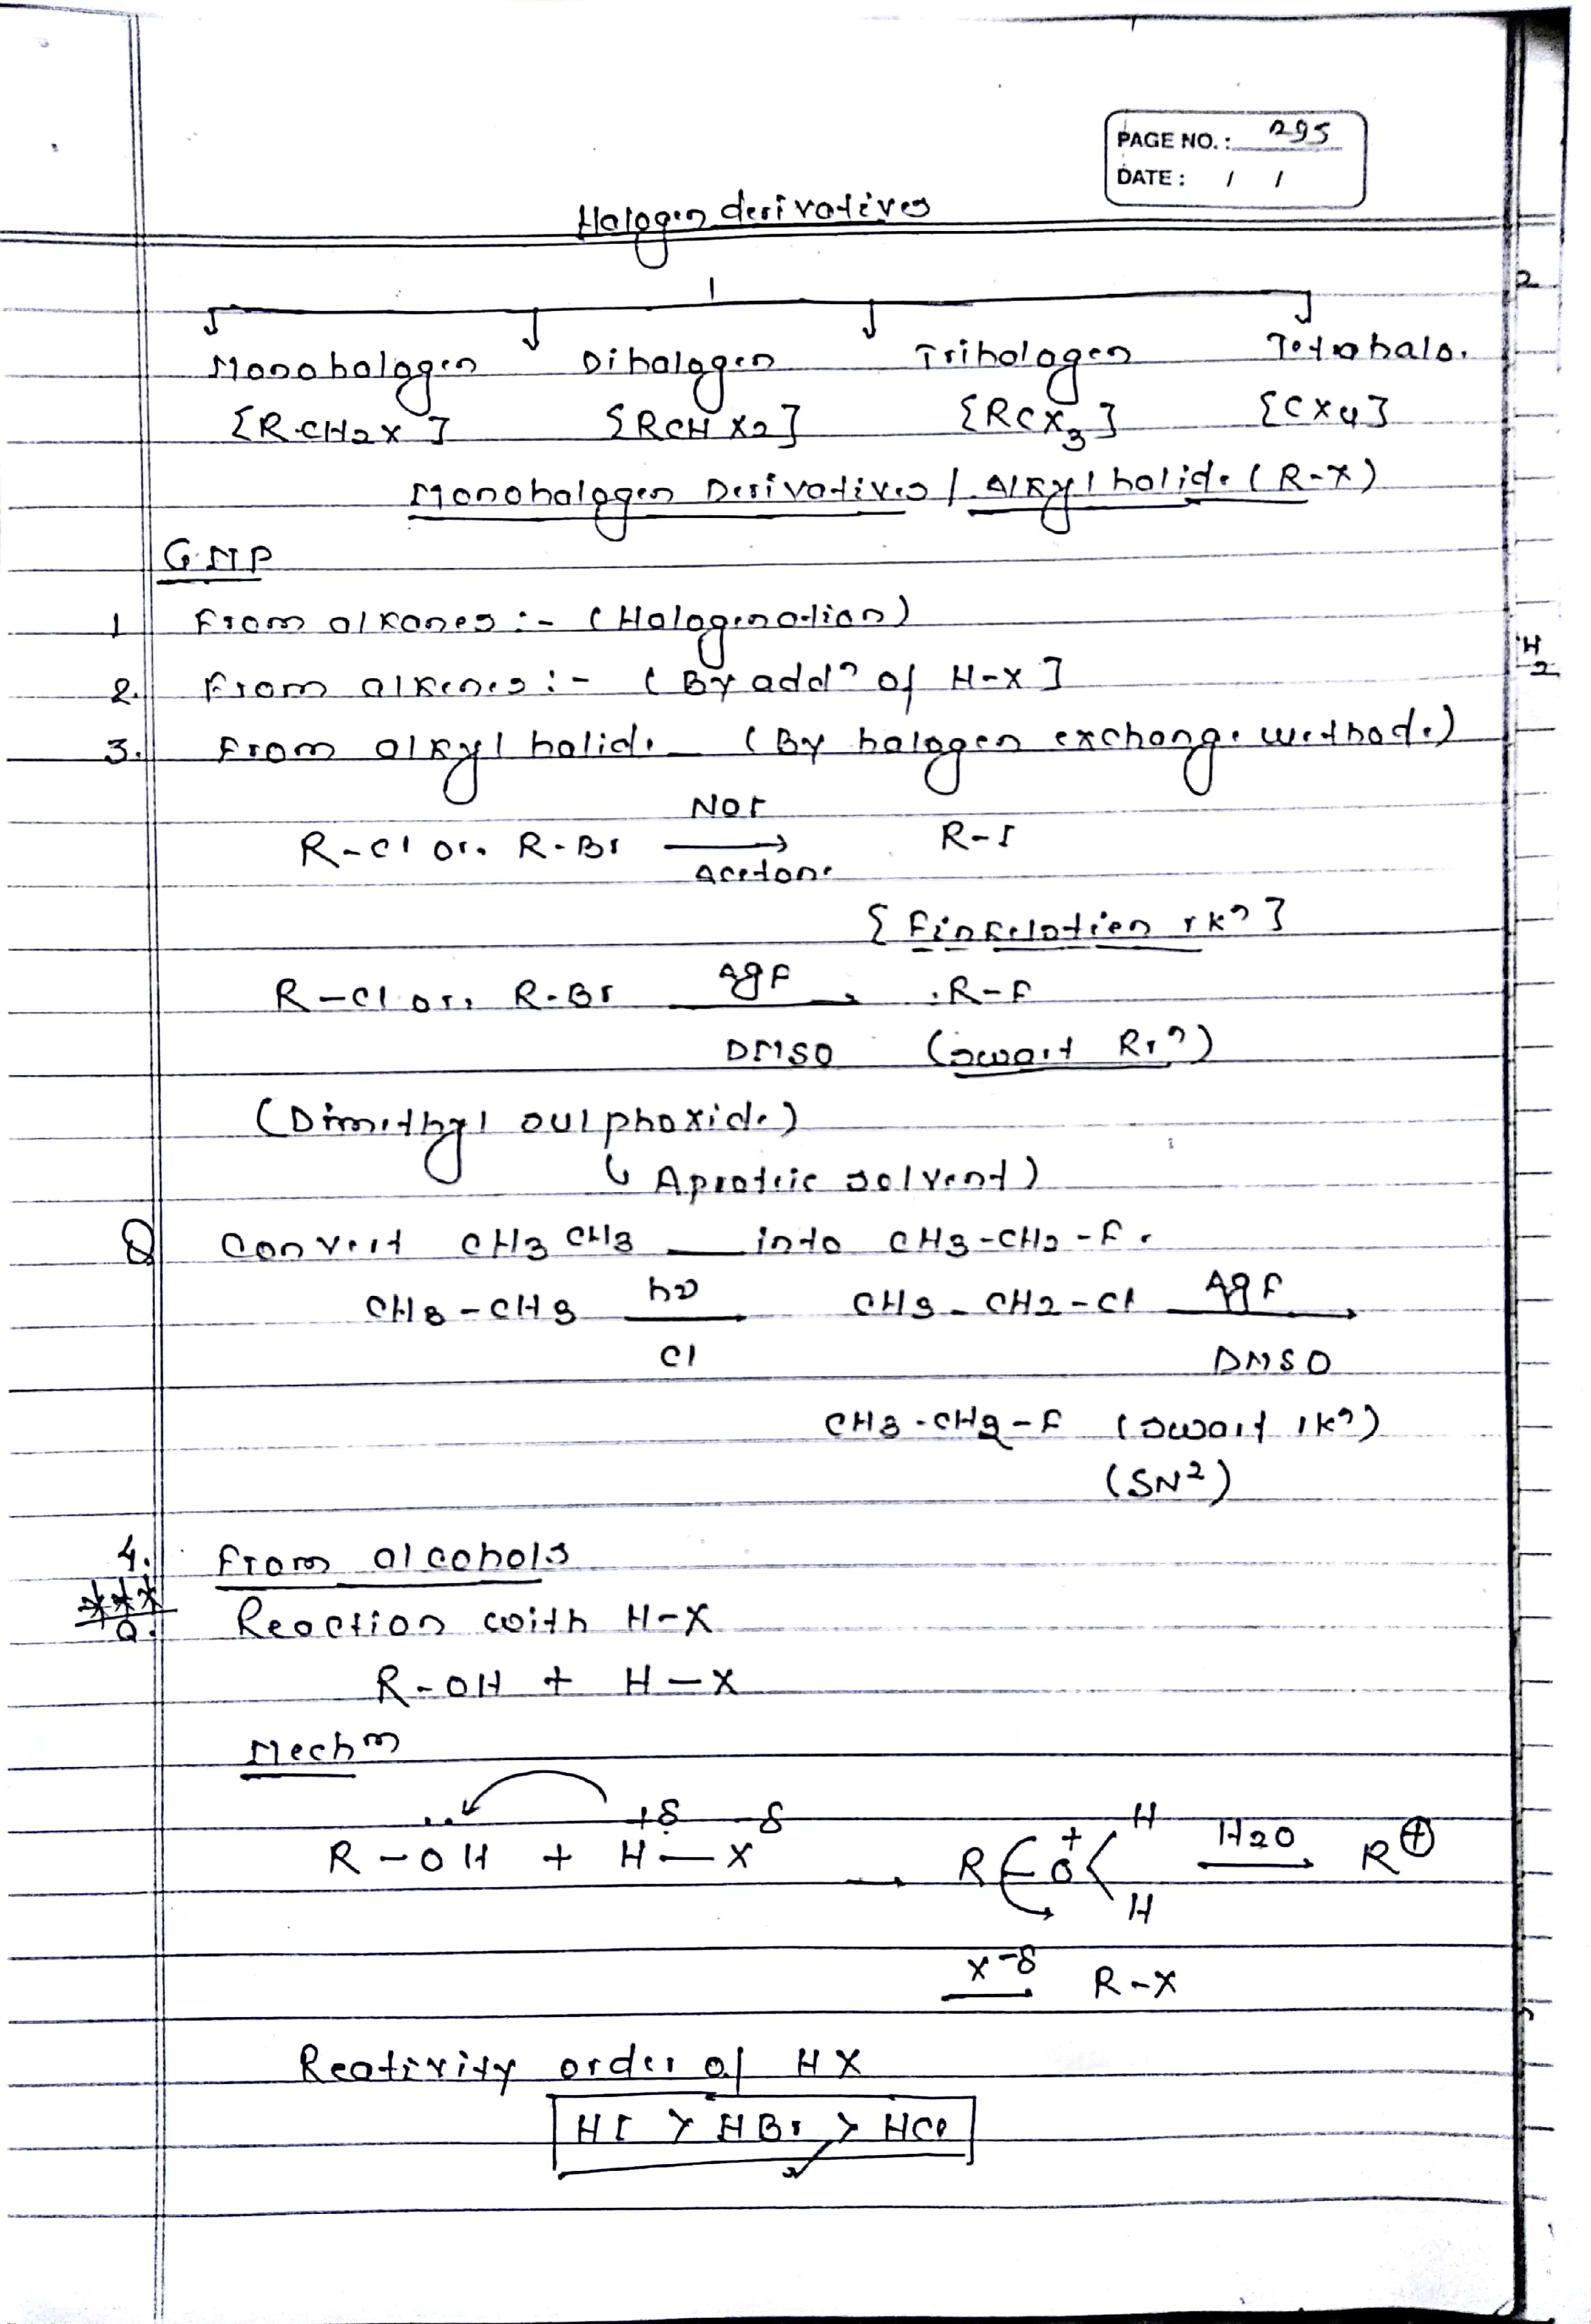 HALOGEN DERIVATIVES (1)